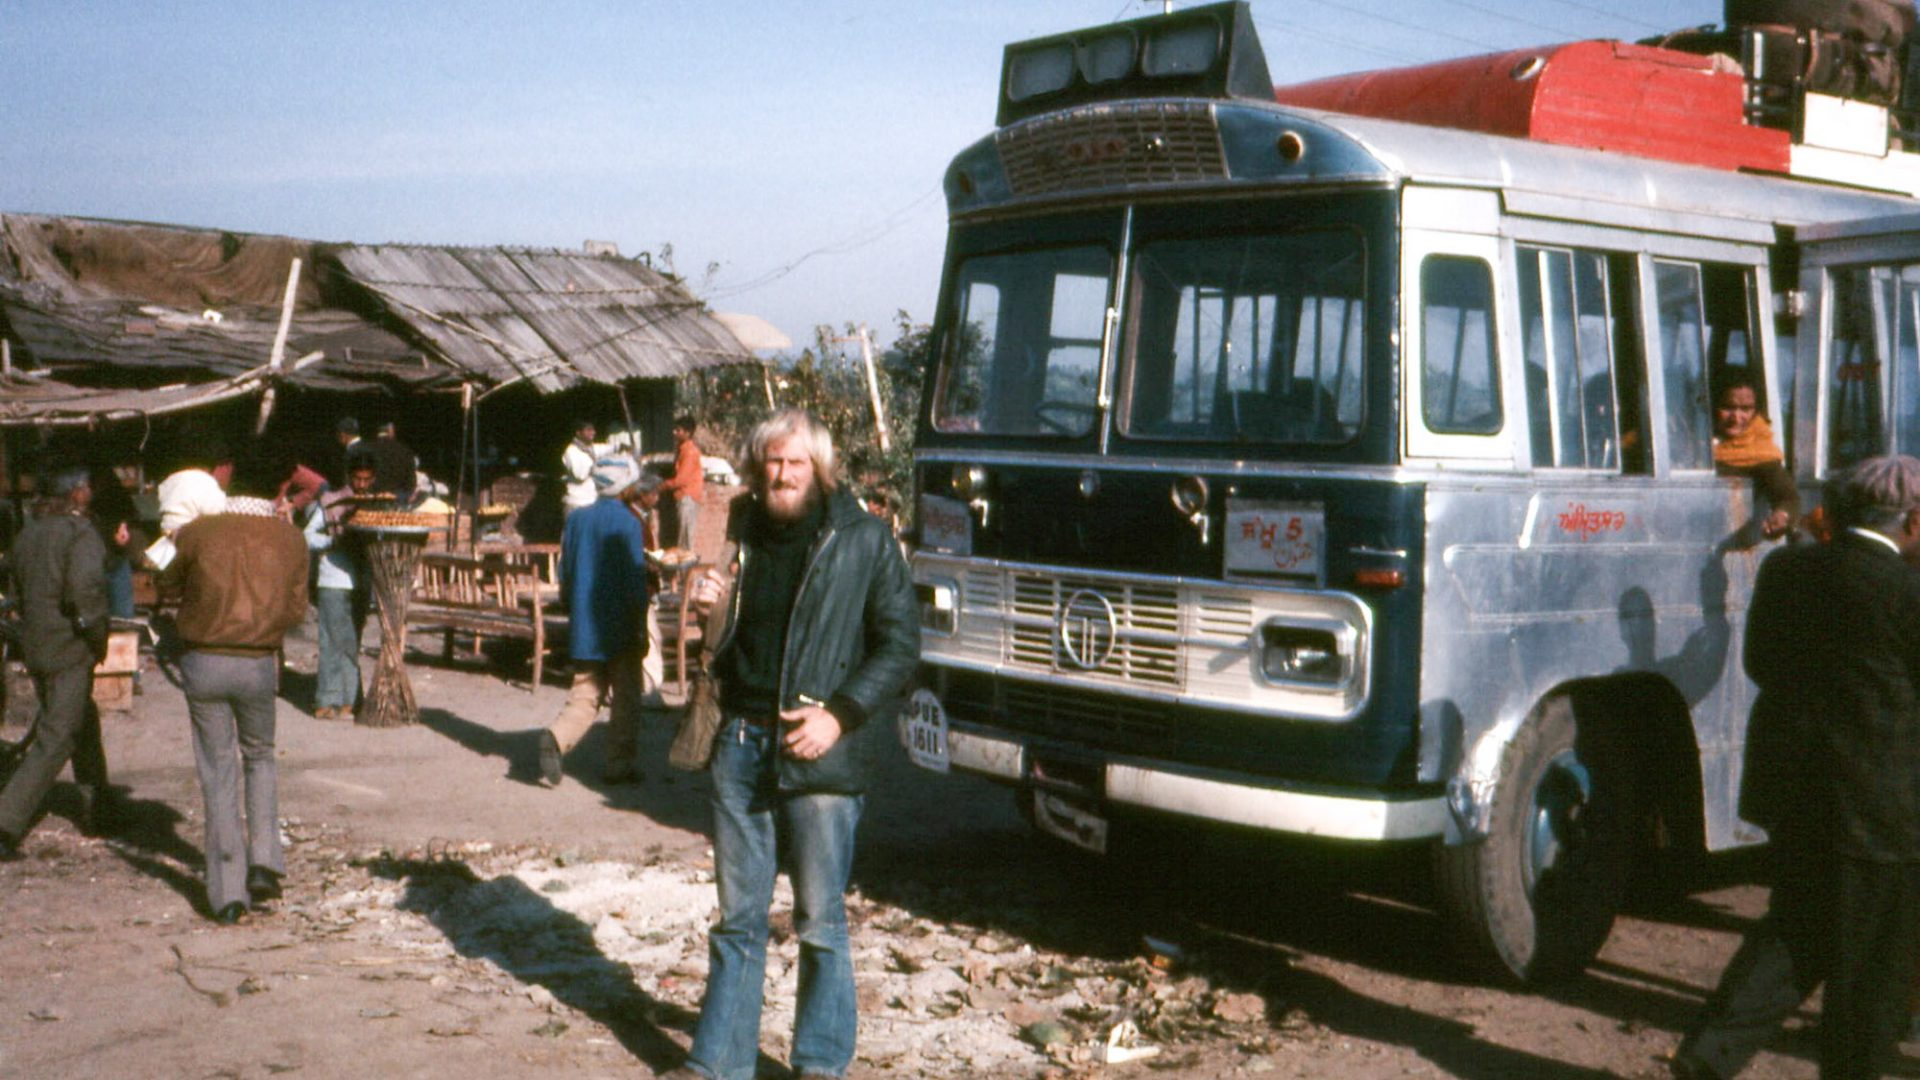 Traveling to India on the overland route in the 70's, the bus takes a break at a roadside stall.